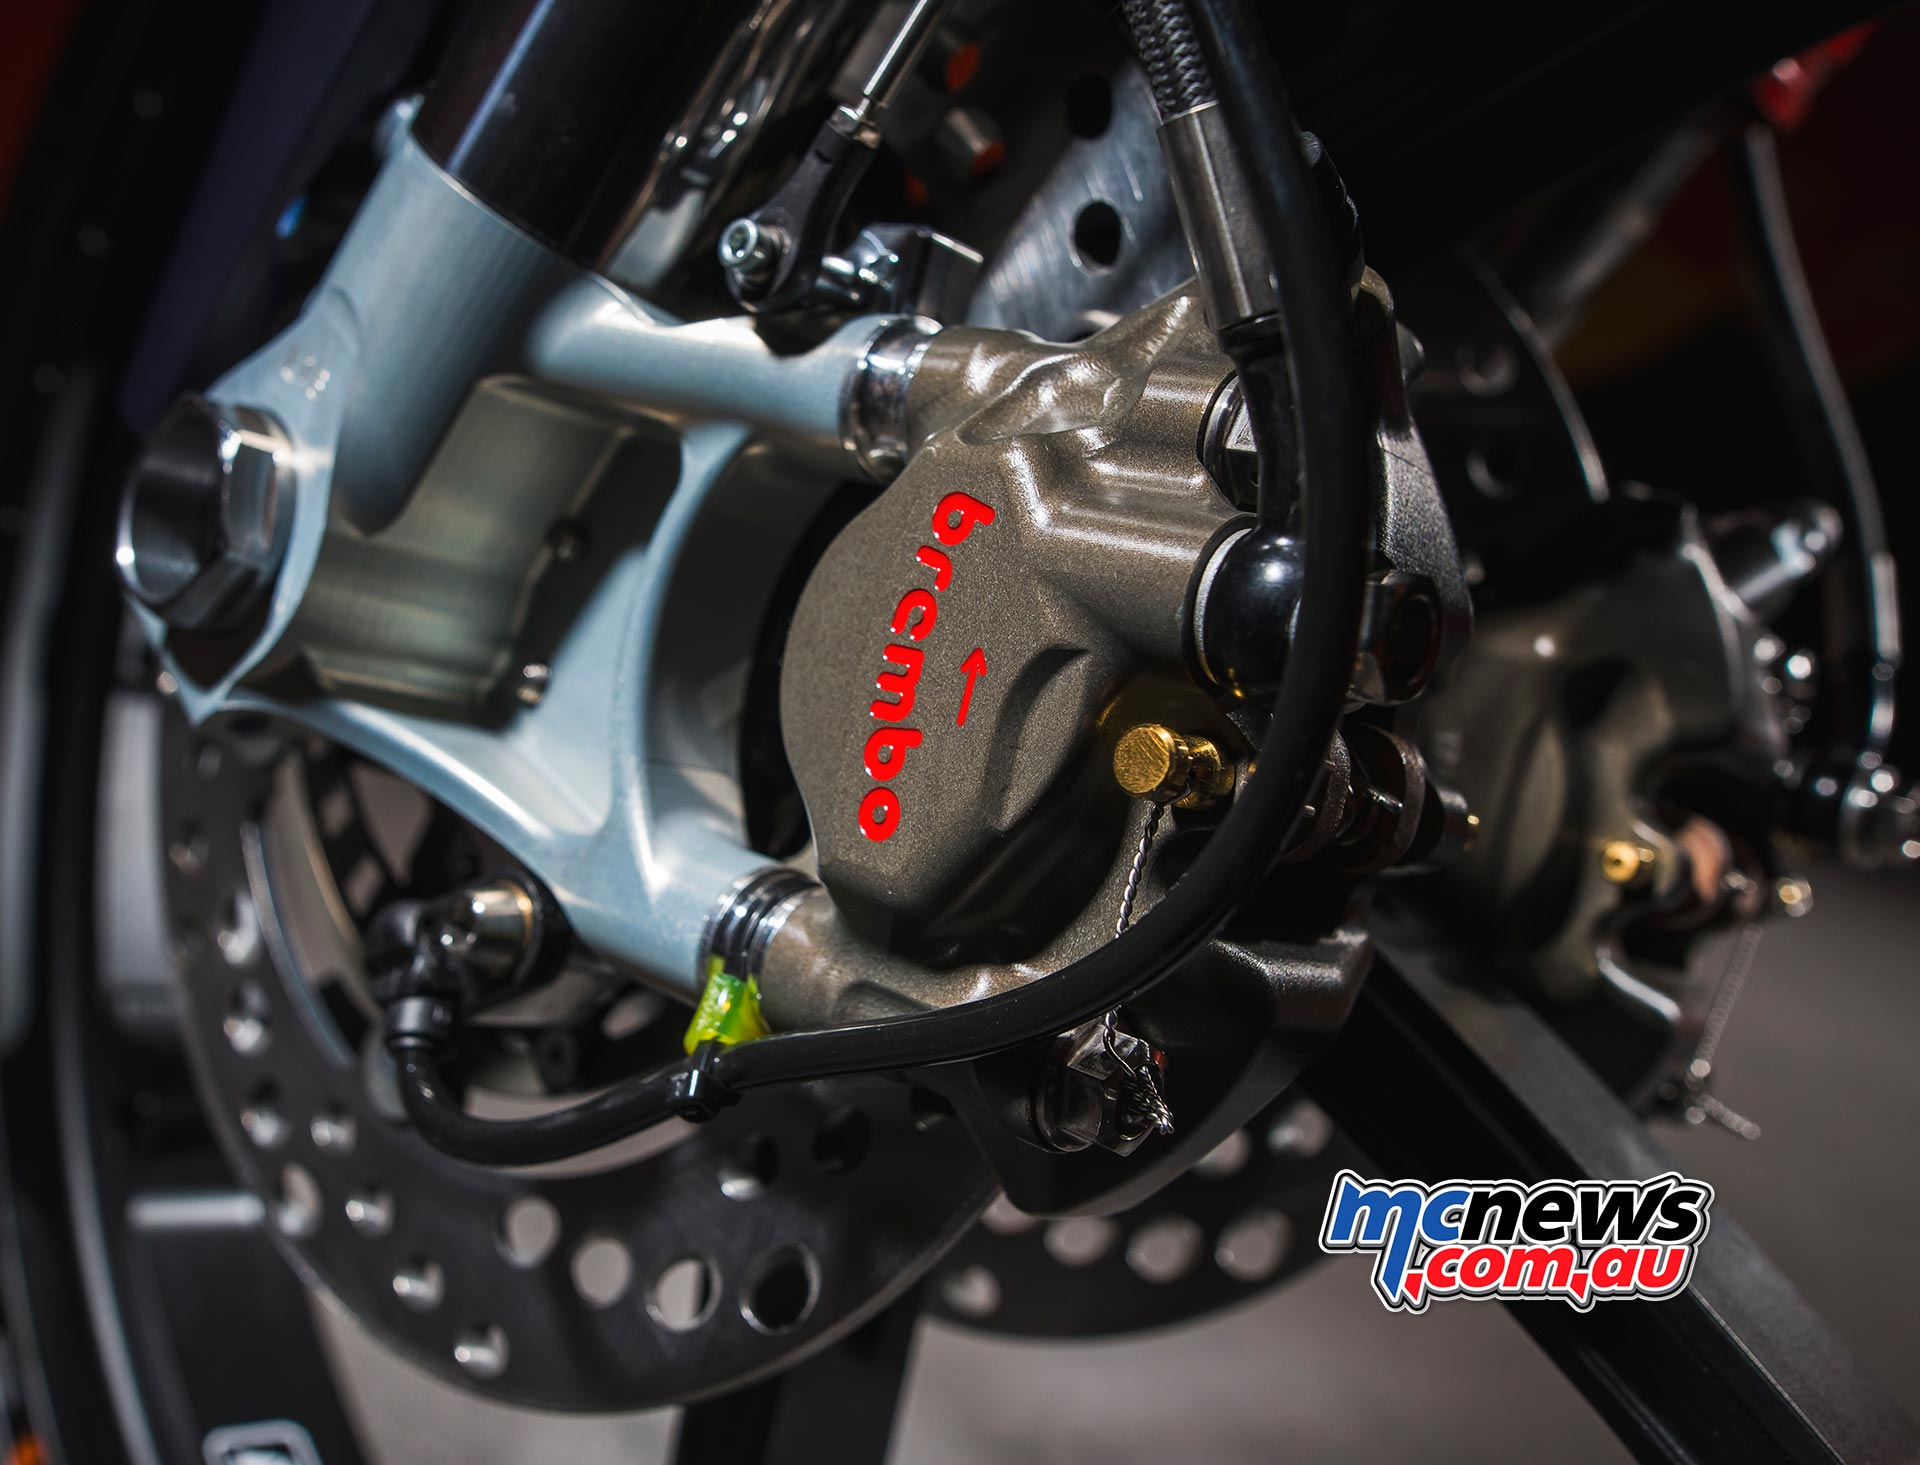 The radial mount Brembo used on the 2017 KTM RC250 Moto3 machine